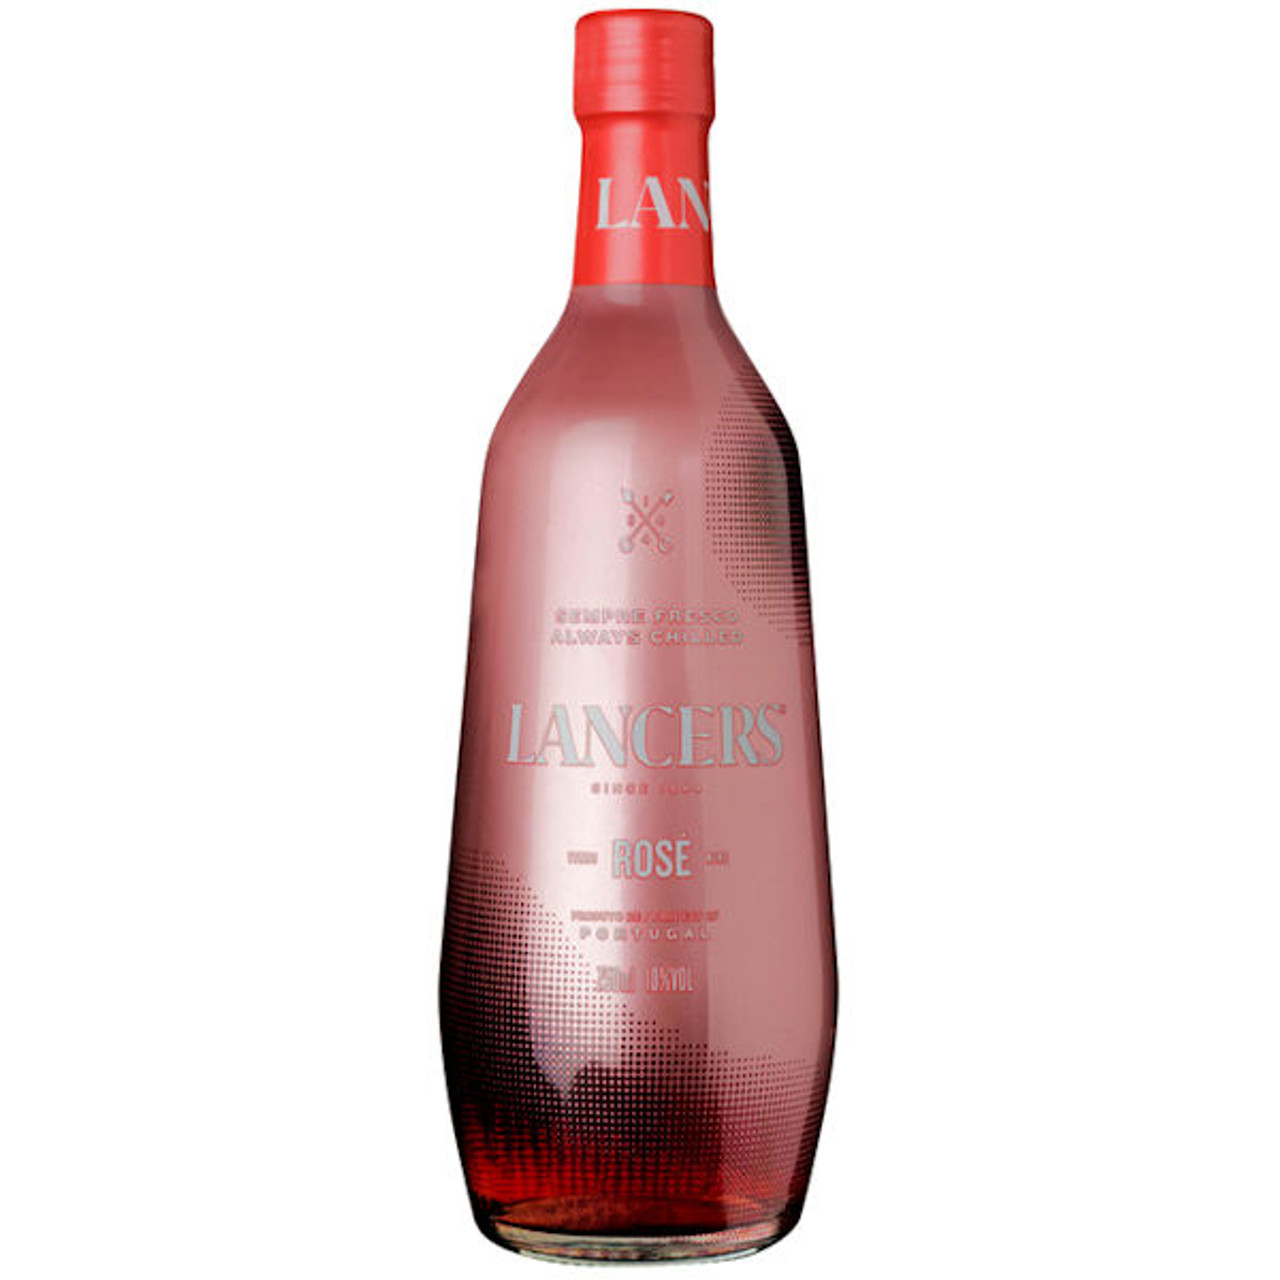 lancers rose wine nv portugal